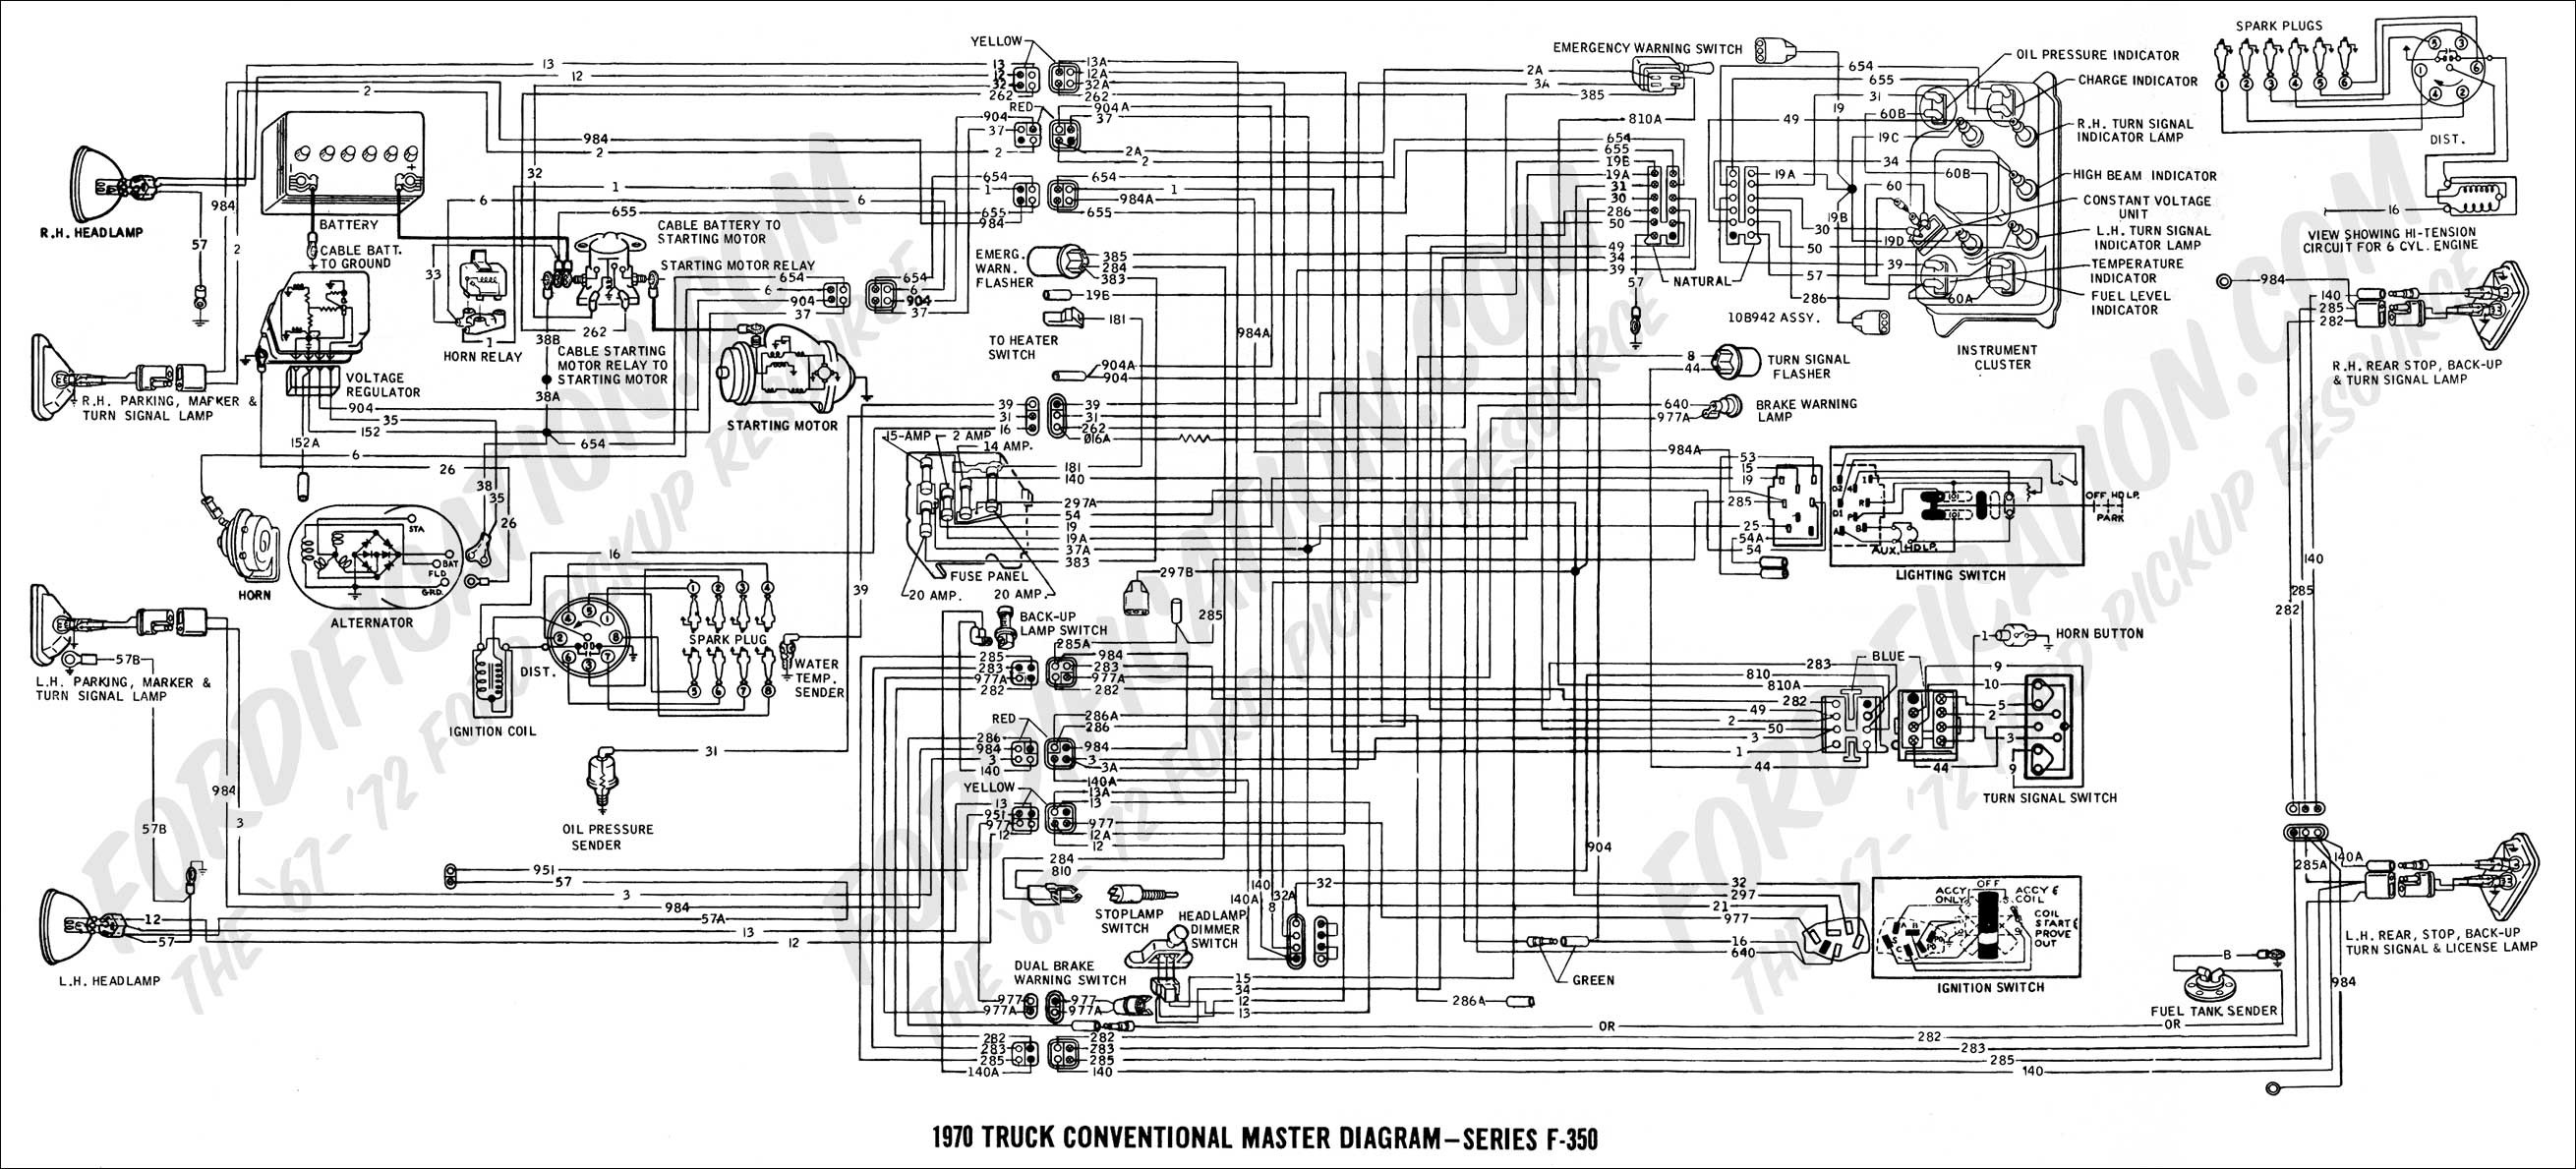 2002 ford F250 Radio Wiring Diagram Diagram as Well ford F 350 Wiring Diagram In Addition ford Headlight Of 2002 ford F250 Radio Wiring Diagram